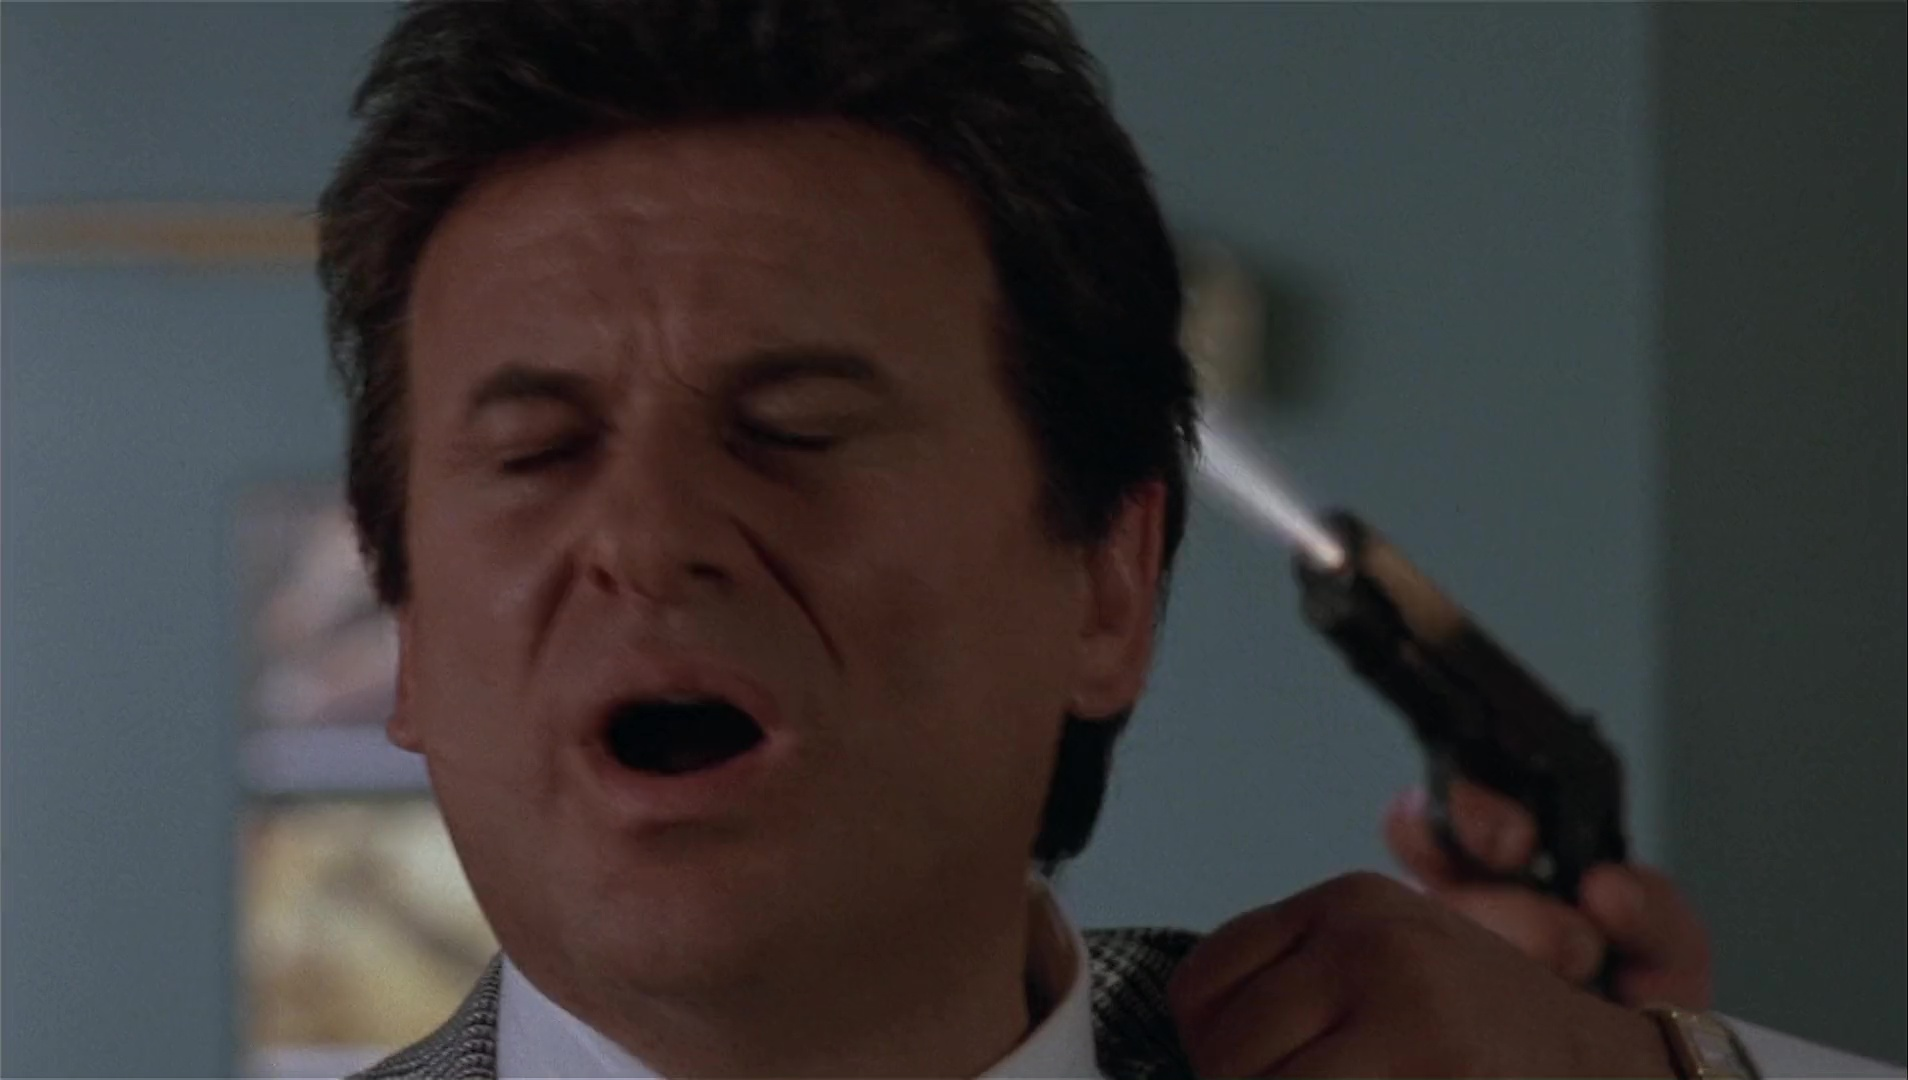 File:Tommy DeVito murdered.jpg